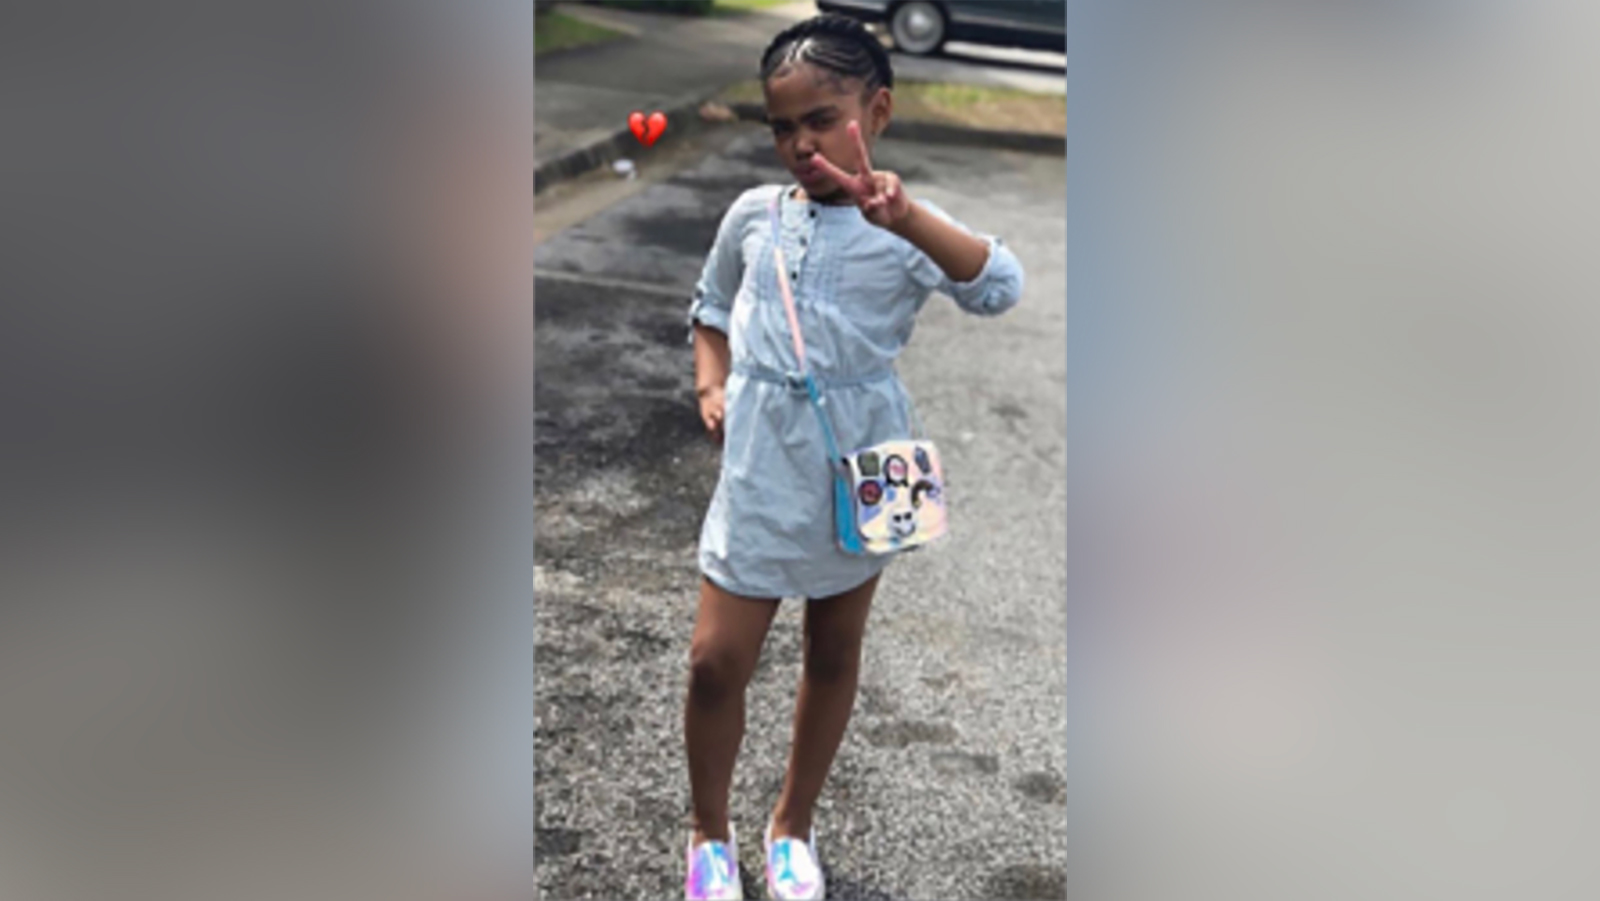 Warrant issued in Atlanta shooting death of 8-year-old Secoriea Turner